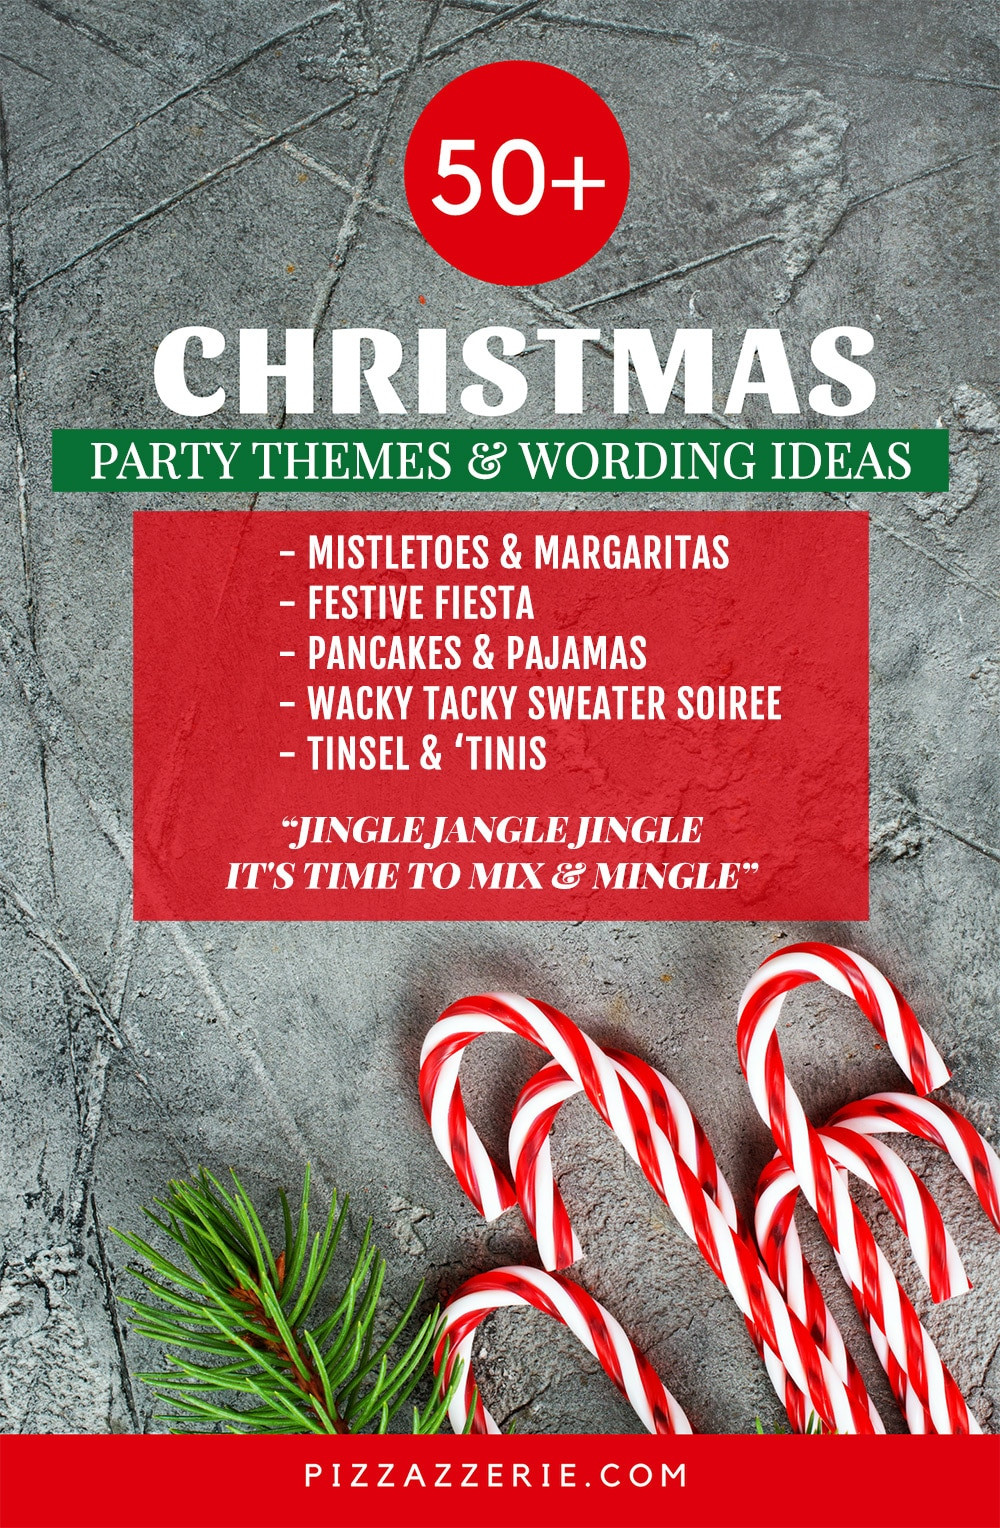 Holiday Party Names Ideas  50 CHRISTMAS PARTY THEMES & CLEVER INVITATION WORDING